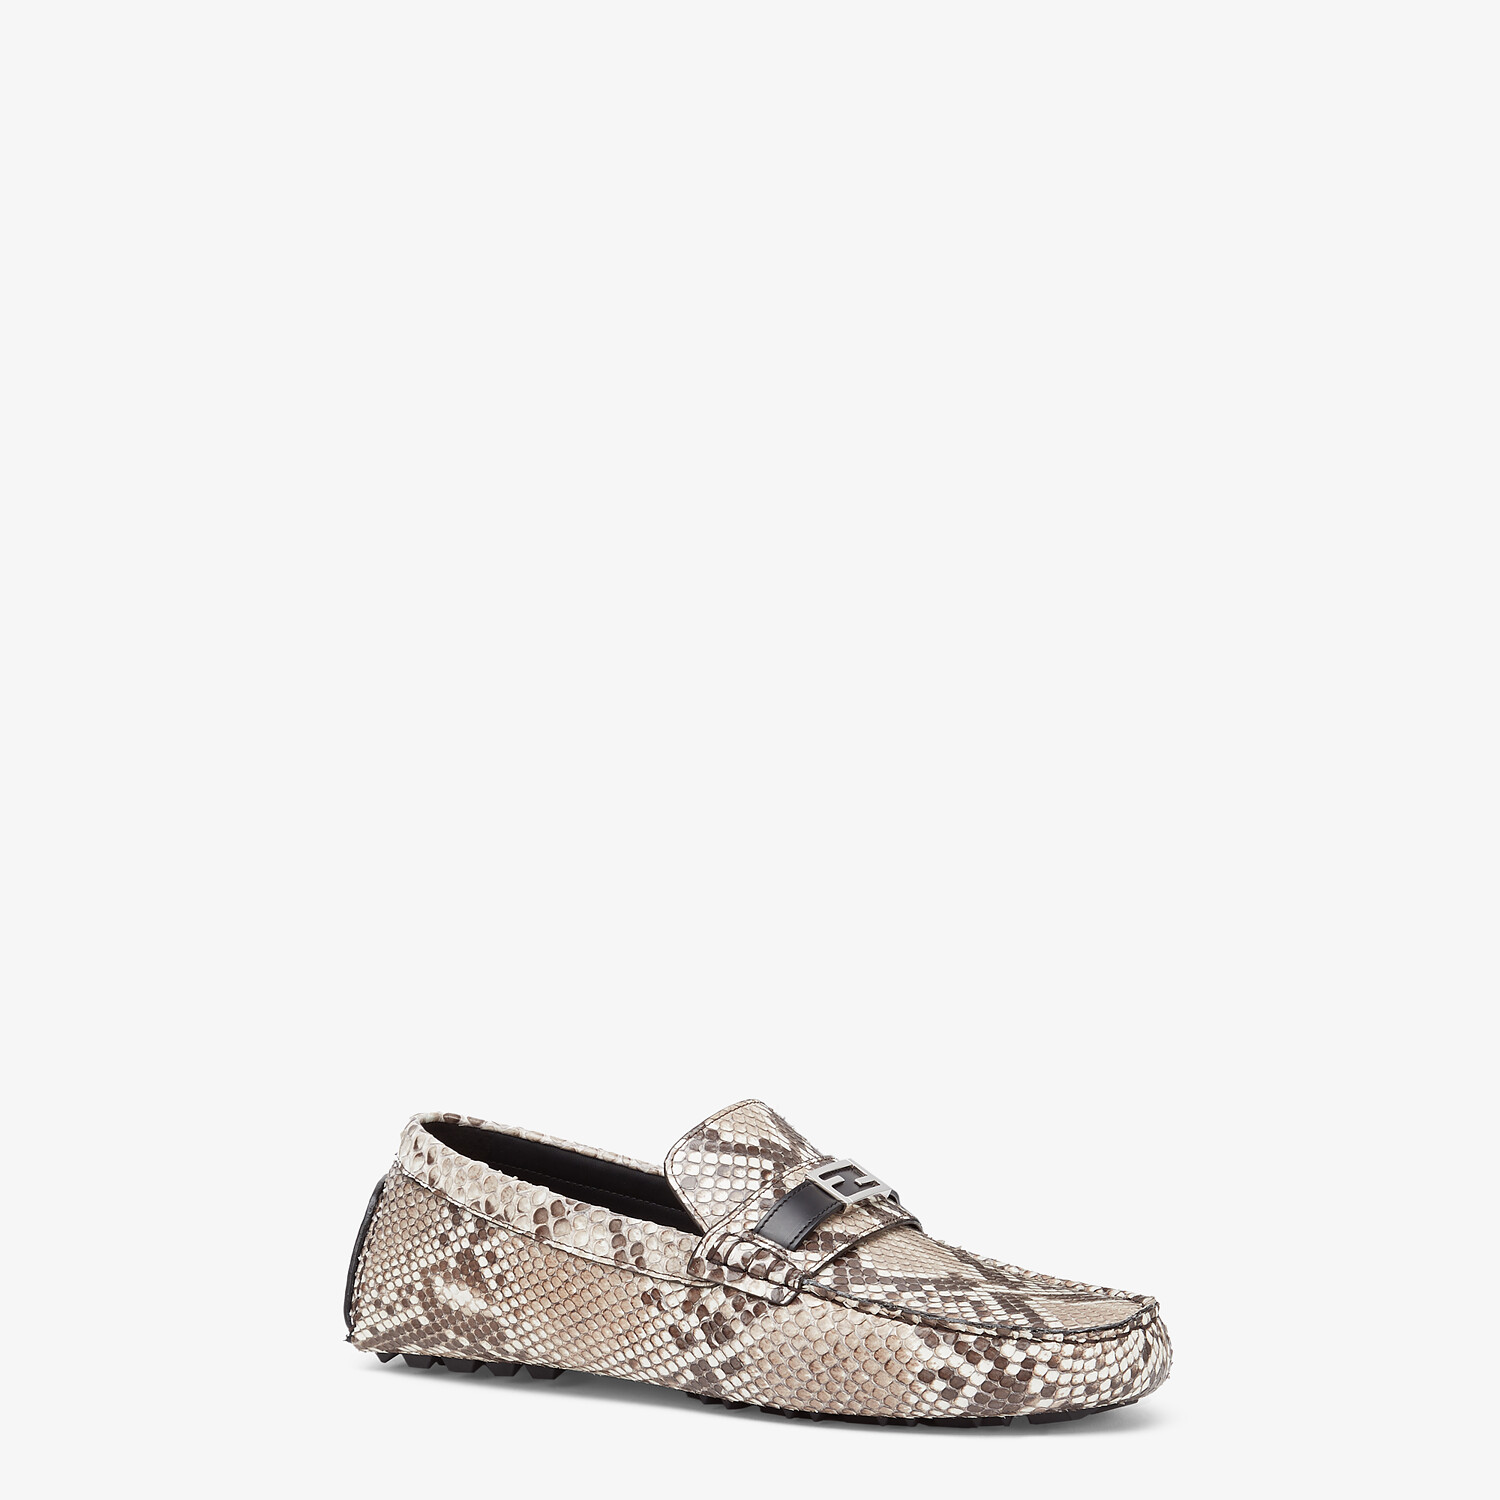 FENDI LOAFERS - Beige python leather drivers - view 2 detail